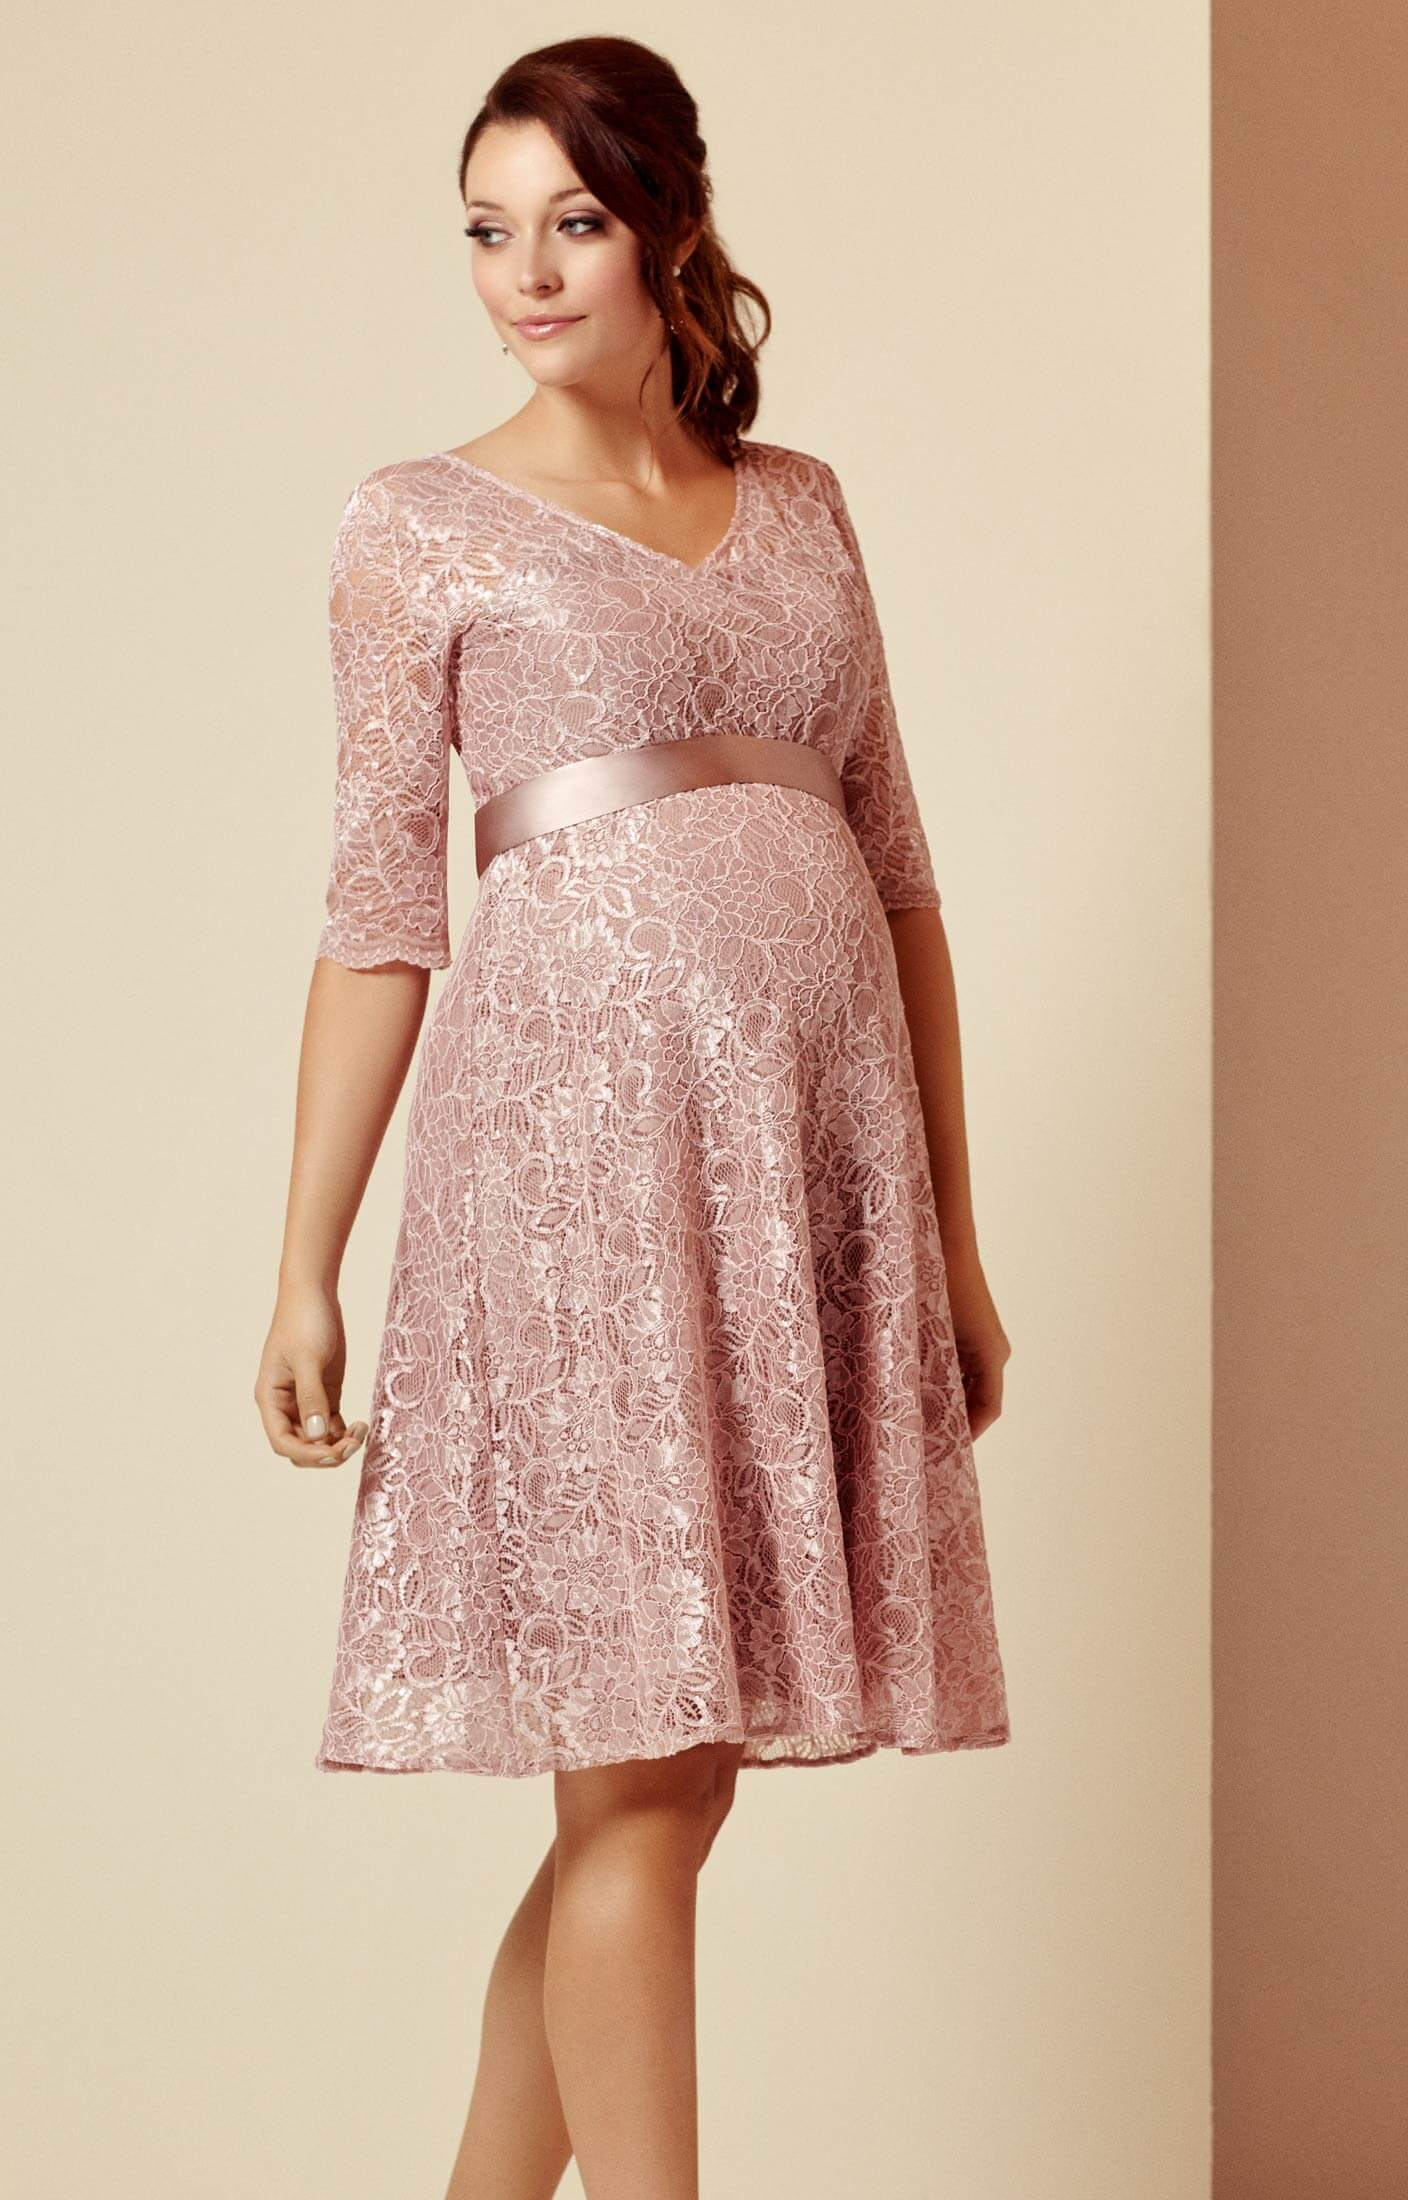 9fb58341eb437 Flossie Maternity Dress Short Orchid Blush - Maternity Wedding Dresses,  Evening Wear and Party Clothes by Tiffany Rose UK